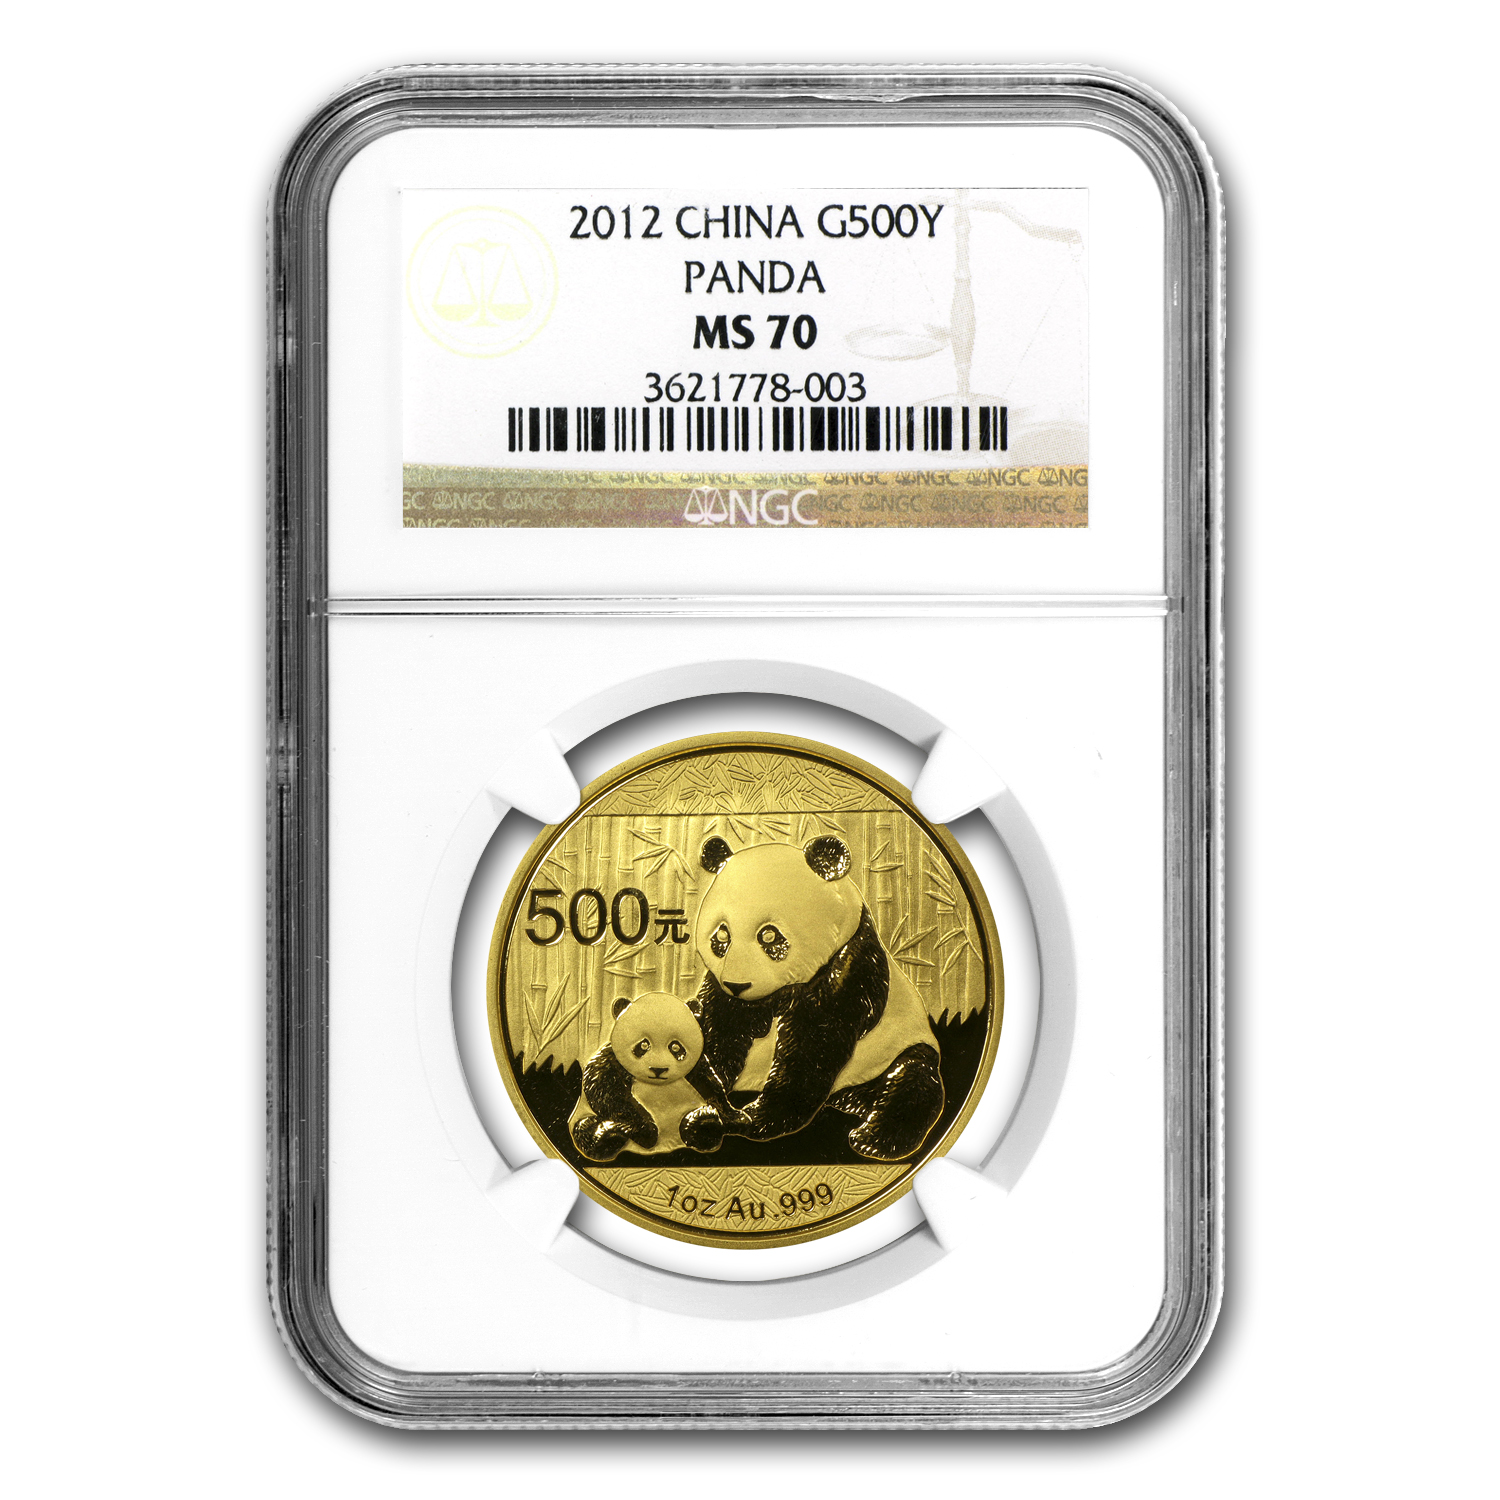 2012 1 oz Gold Chinese Panda MS-70 NGC